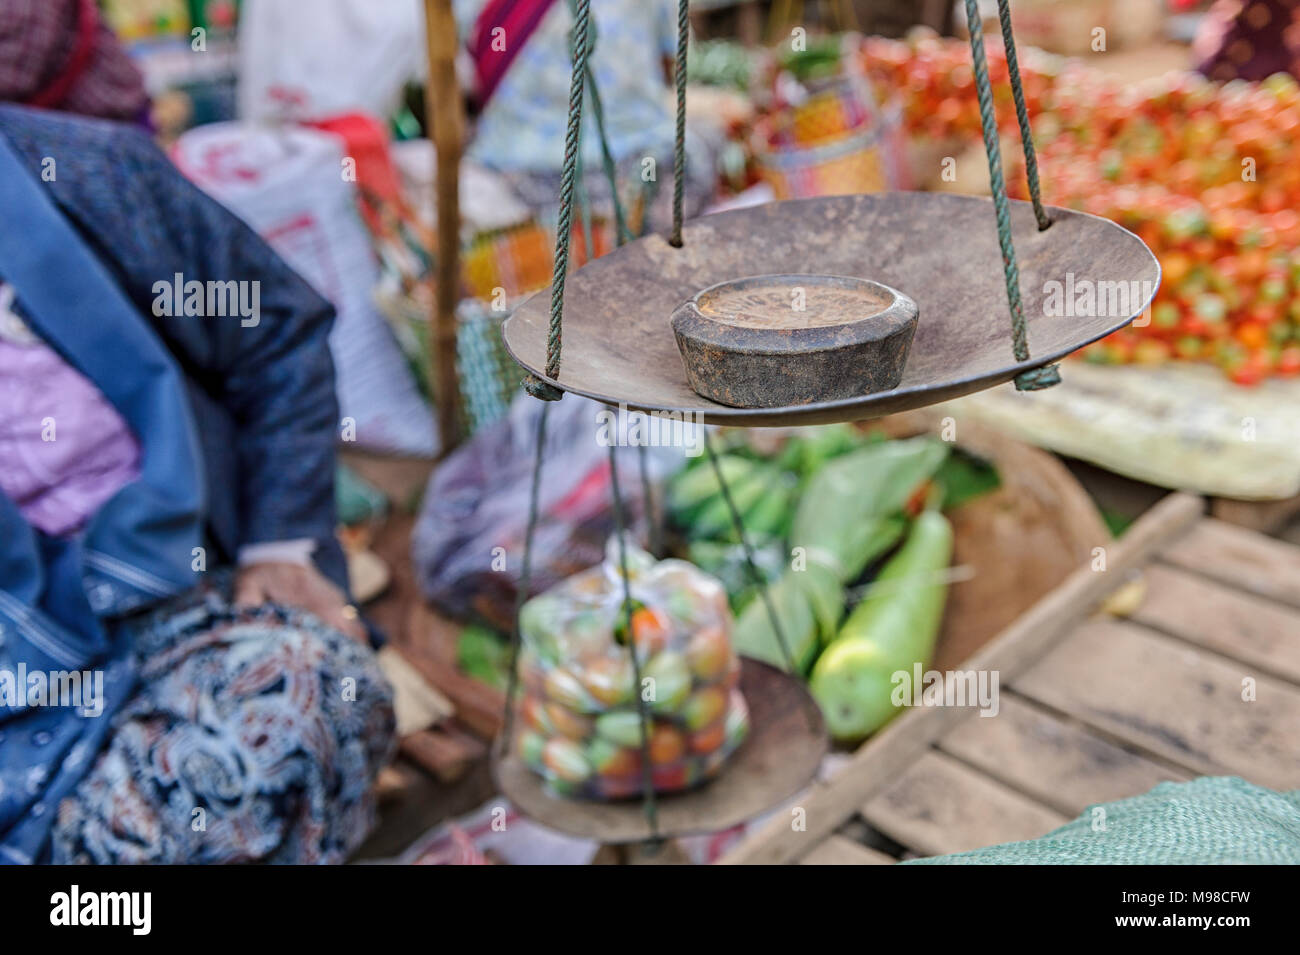 Weigh scale at the open market in Heho, Myanmar - Stock Image